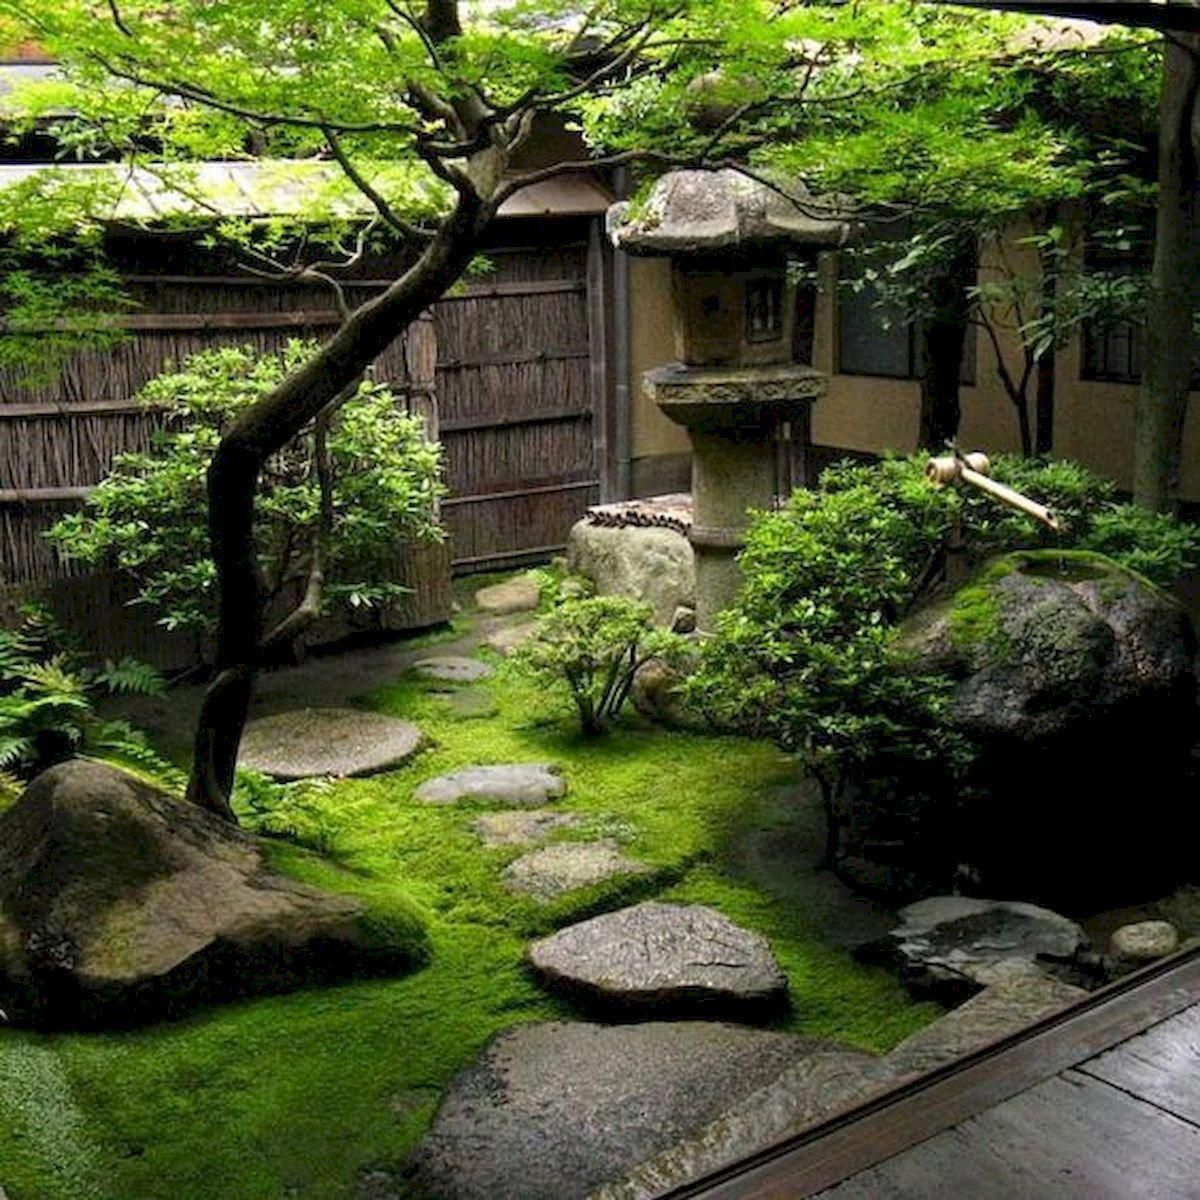 f20793b7a014354502a12b96ba090732 - Japanese Gardens Right Angle And Natural Form